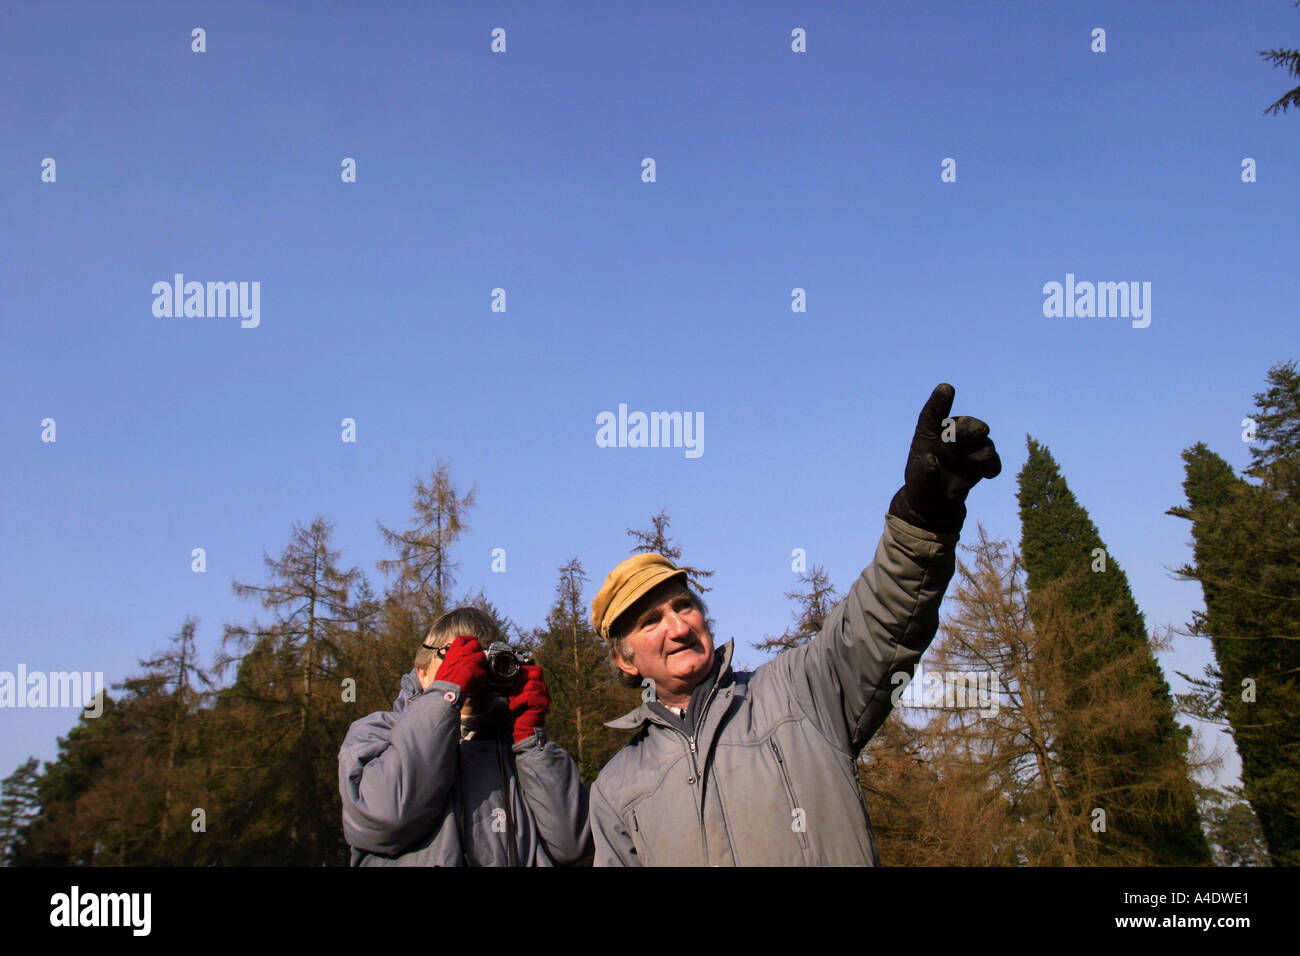 Two visitors birdwatch and photograph at the Bedgebury National Pinetum in Kent UK - Stock Image